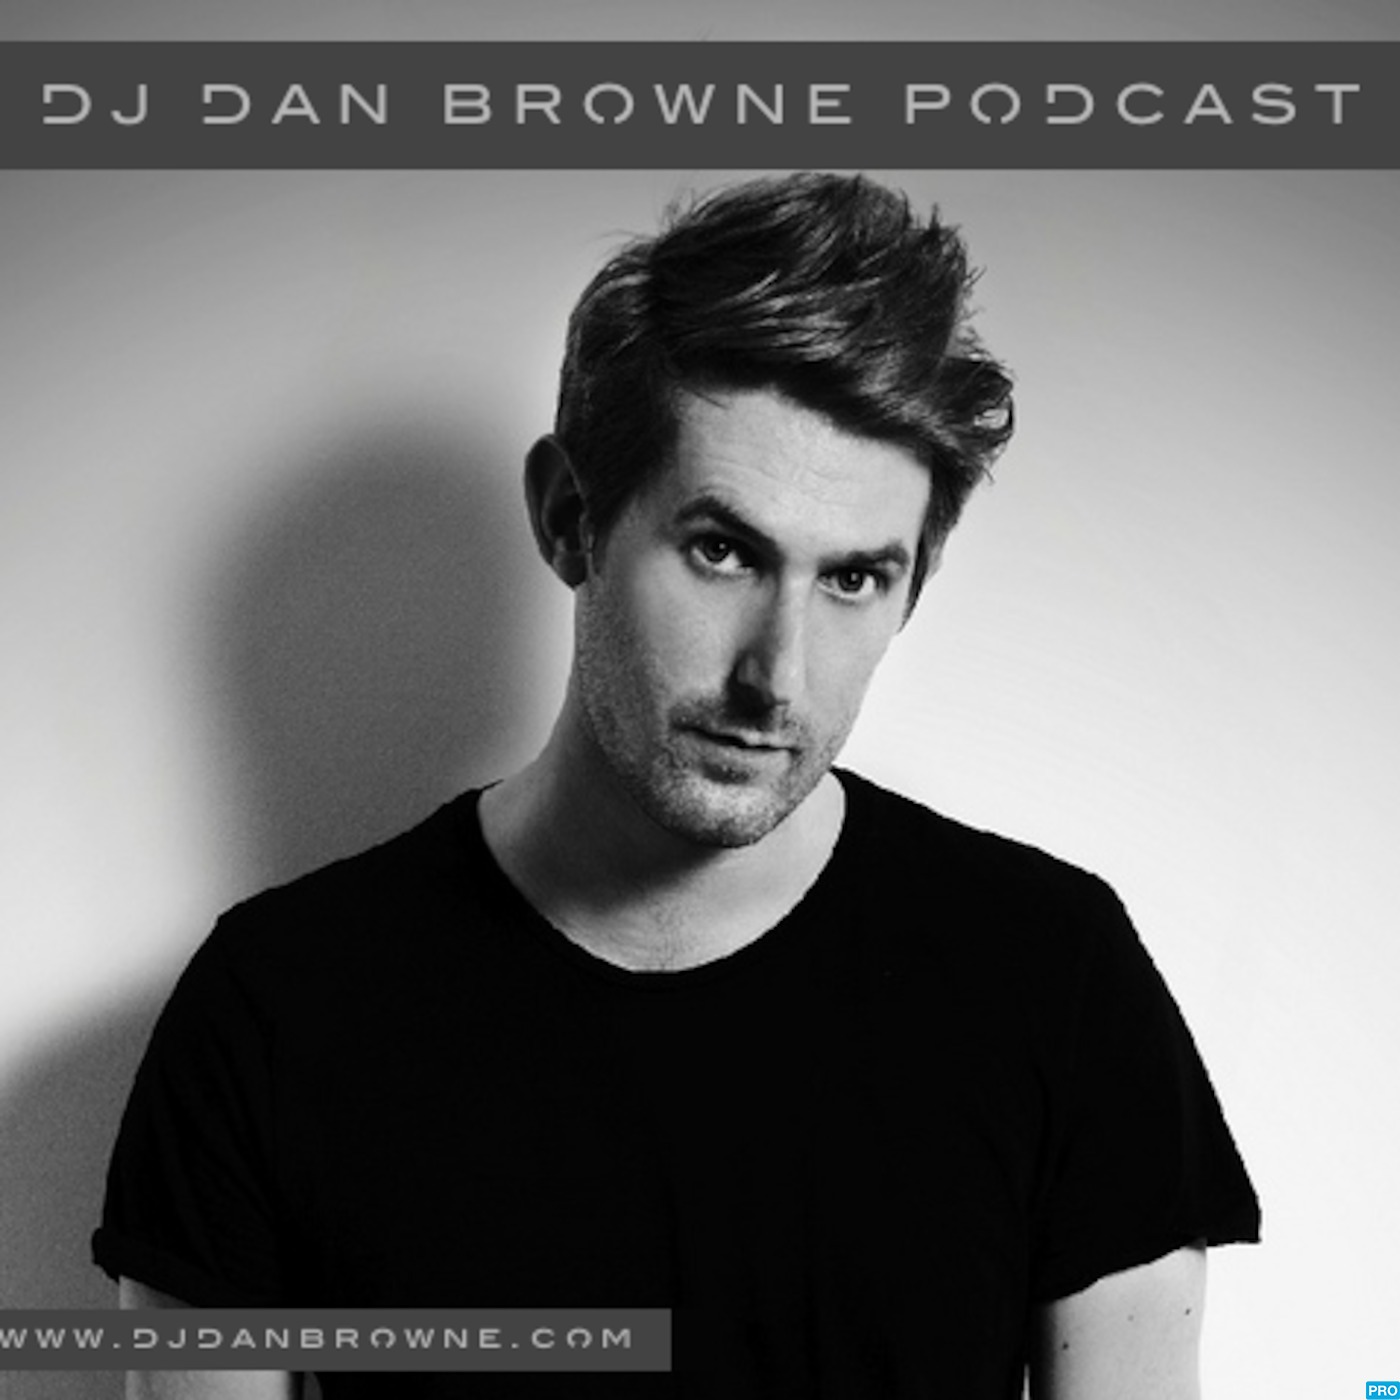 DJ Dan Browne Podcast